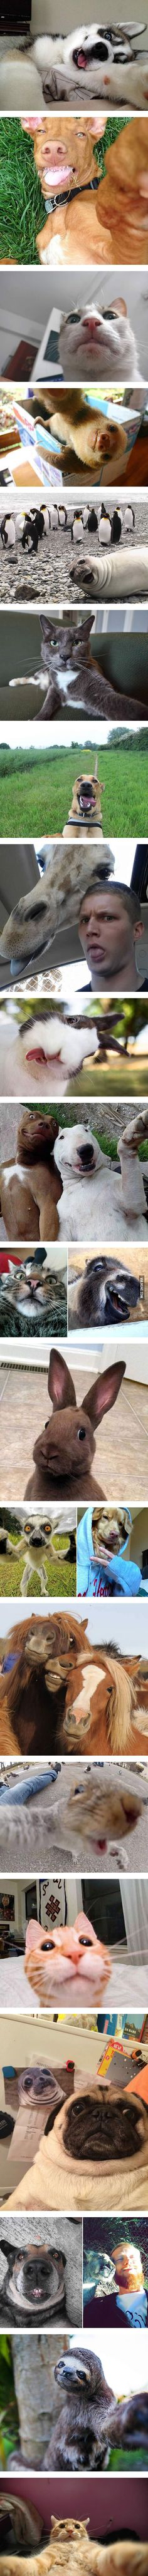 The Funniest Pictures Of Animals Posing For A Selfie